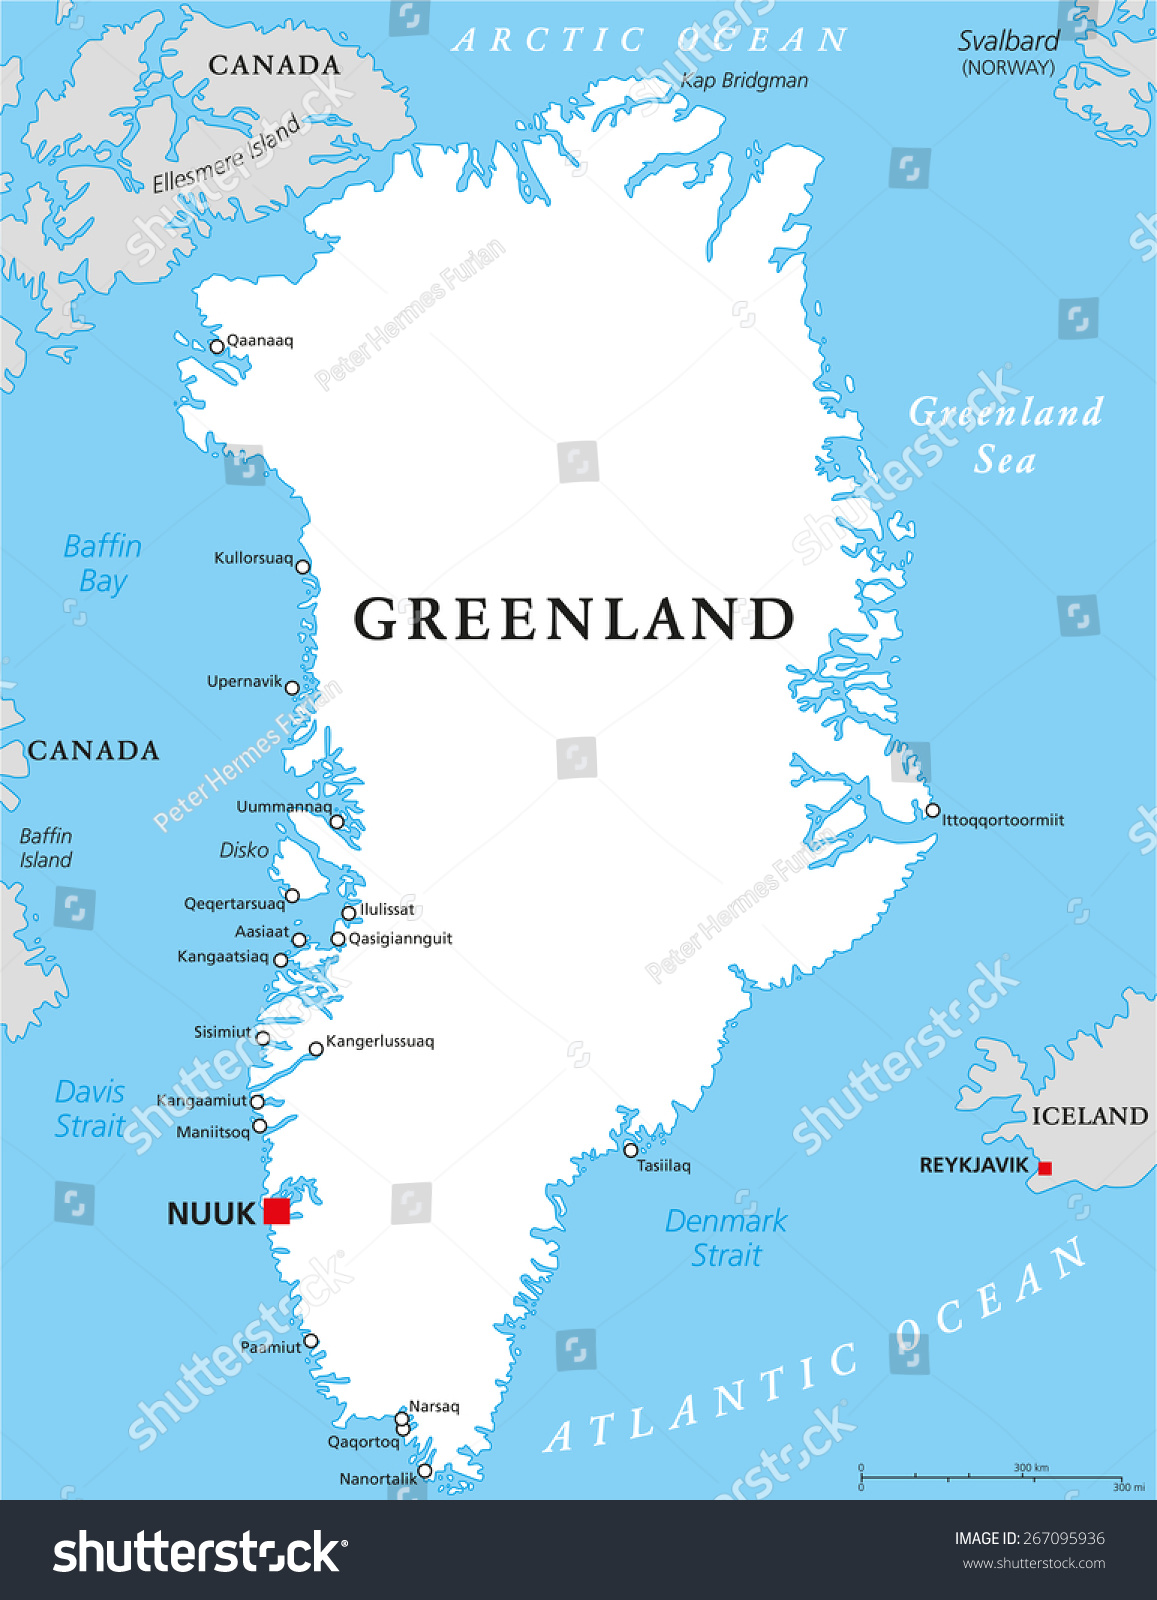 greenland political map with capital nuuk and important cities autonomouscountry within the kingdom of. greenland political map capital nuuk important stock vector